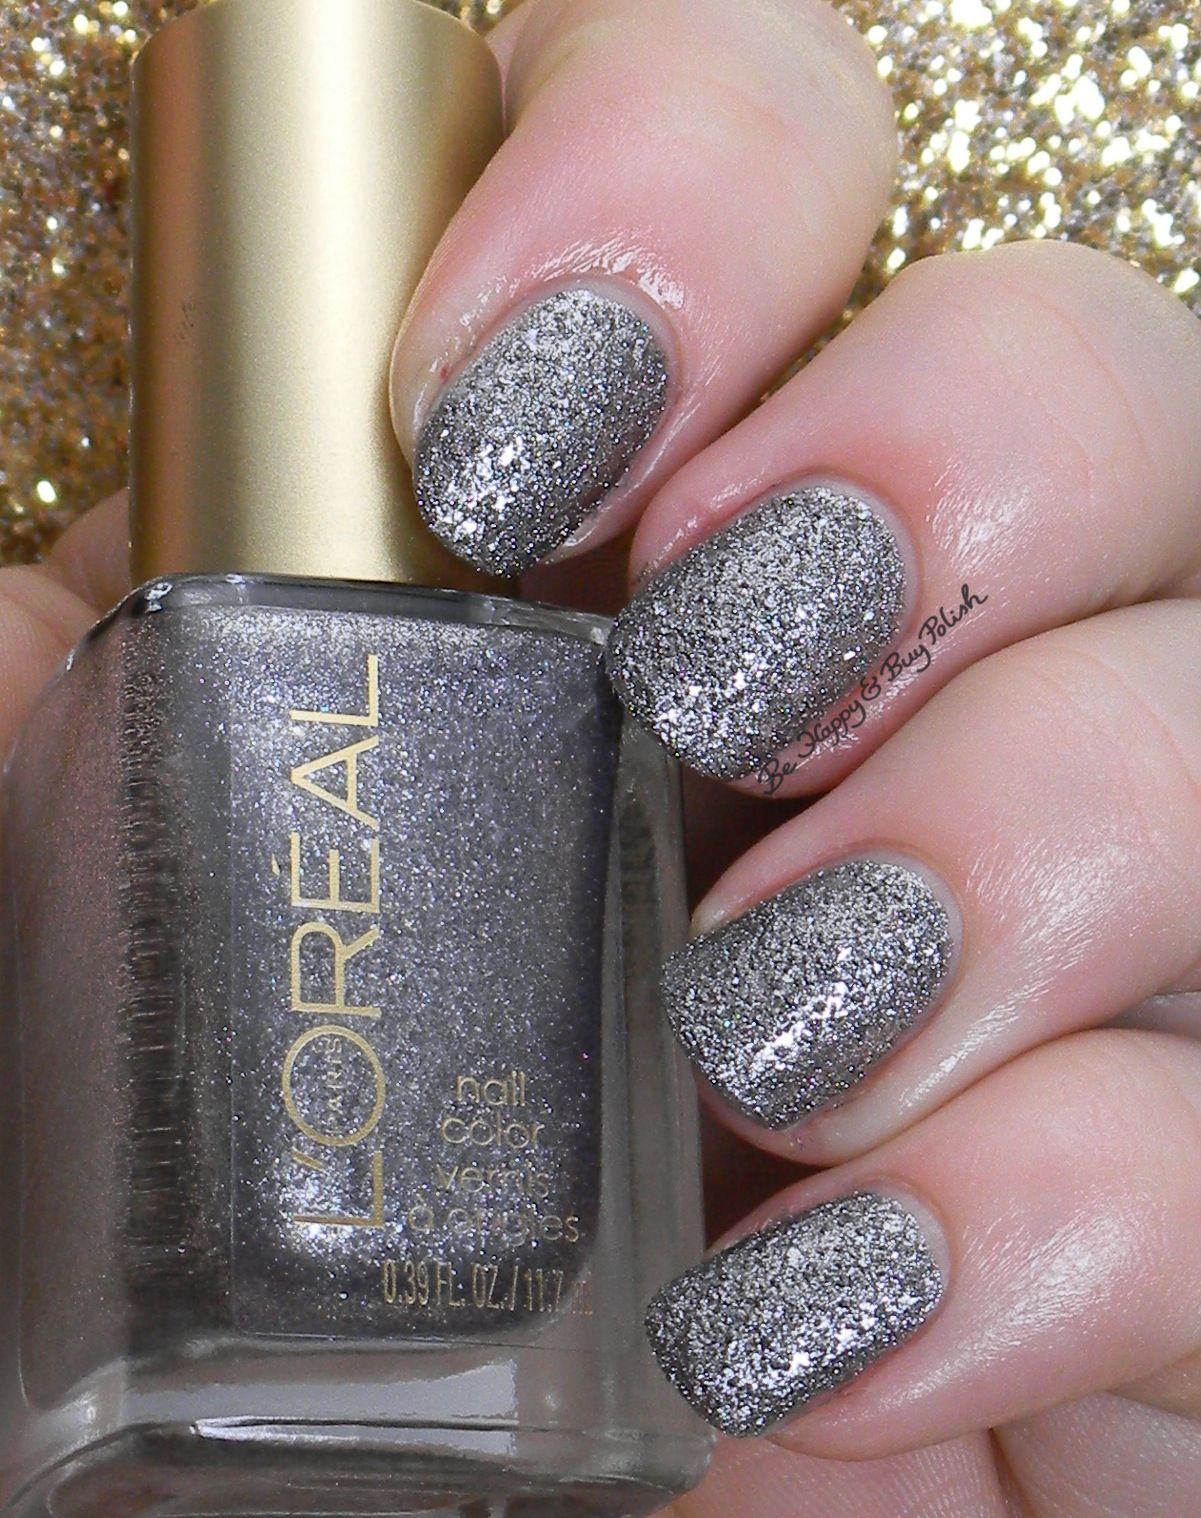 L'Oreal Dark Sides of Grey nail polishes swatches + review